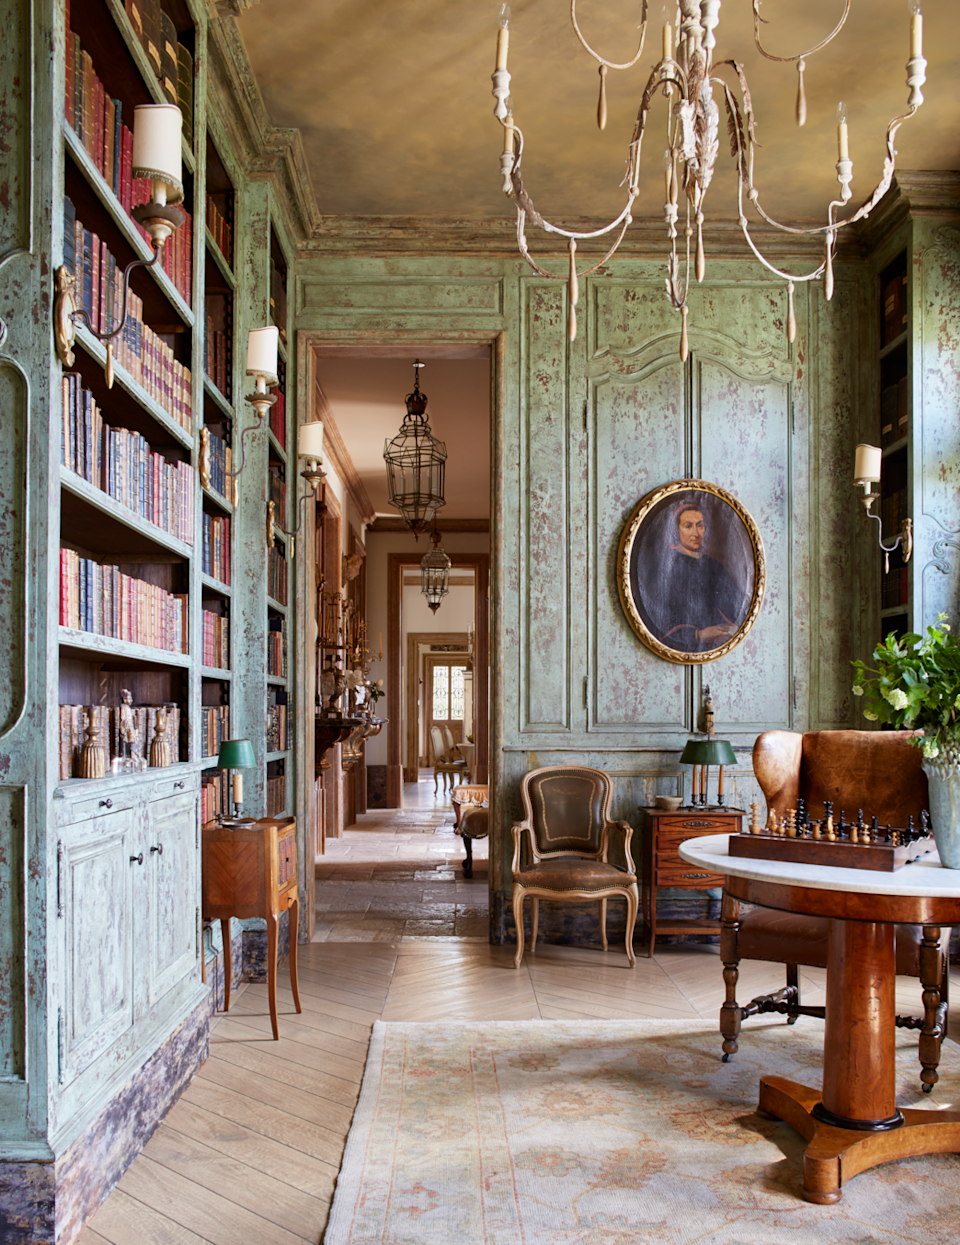 """<p>Inspired by the Villa San Michele outside of Florence, this Southern California home embraces its European influences with antiques sourced throughout the continent flooding each room. Designer <a href=""""http://www.steicheninteriordesign.com/"""" rel=""""nofollow noopener"""" target=""""_blank"""" data-ylk=""""slk:Laurie Steichen"""" class=""""link rapid-noclick-resp"""">Laurie Steichen</a> painted the paneling with an aged patina that infuses the library with a sense of history. An antique English leather wing chair is paired with a French gueridon table from <a href=""""https://www.instagram.com/brenda_antin/?hl=en"""" rel=""""nofollow noopener"""" target=""""_blank"""" data-ylk=""""slk:Brenda Antin"""" class=""""link rapid-noclick-resp"""">Brenda Antin</a>.</p>"""